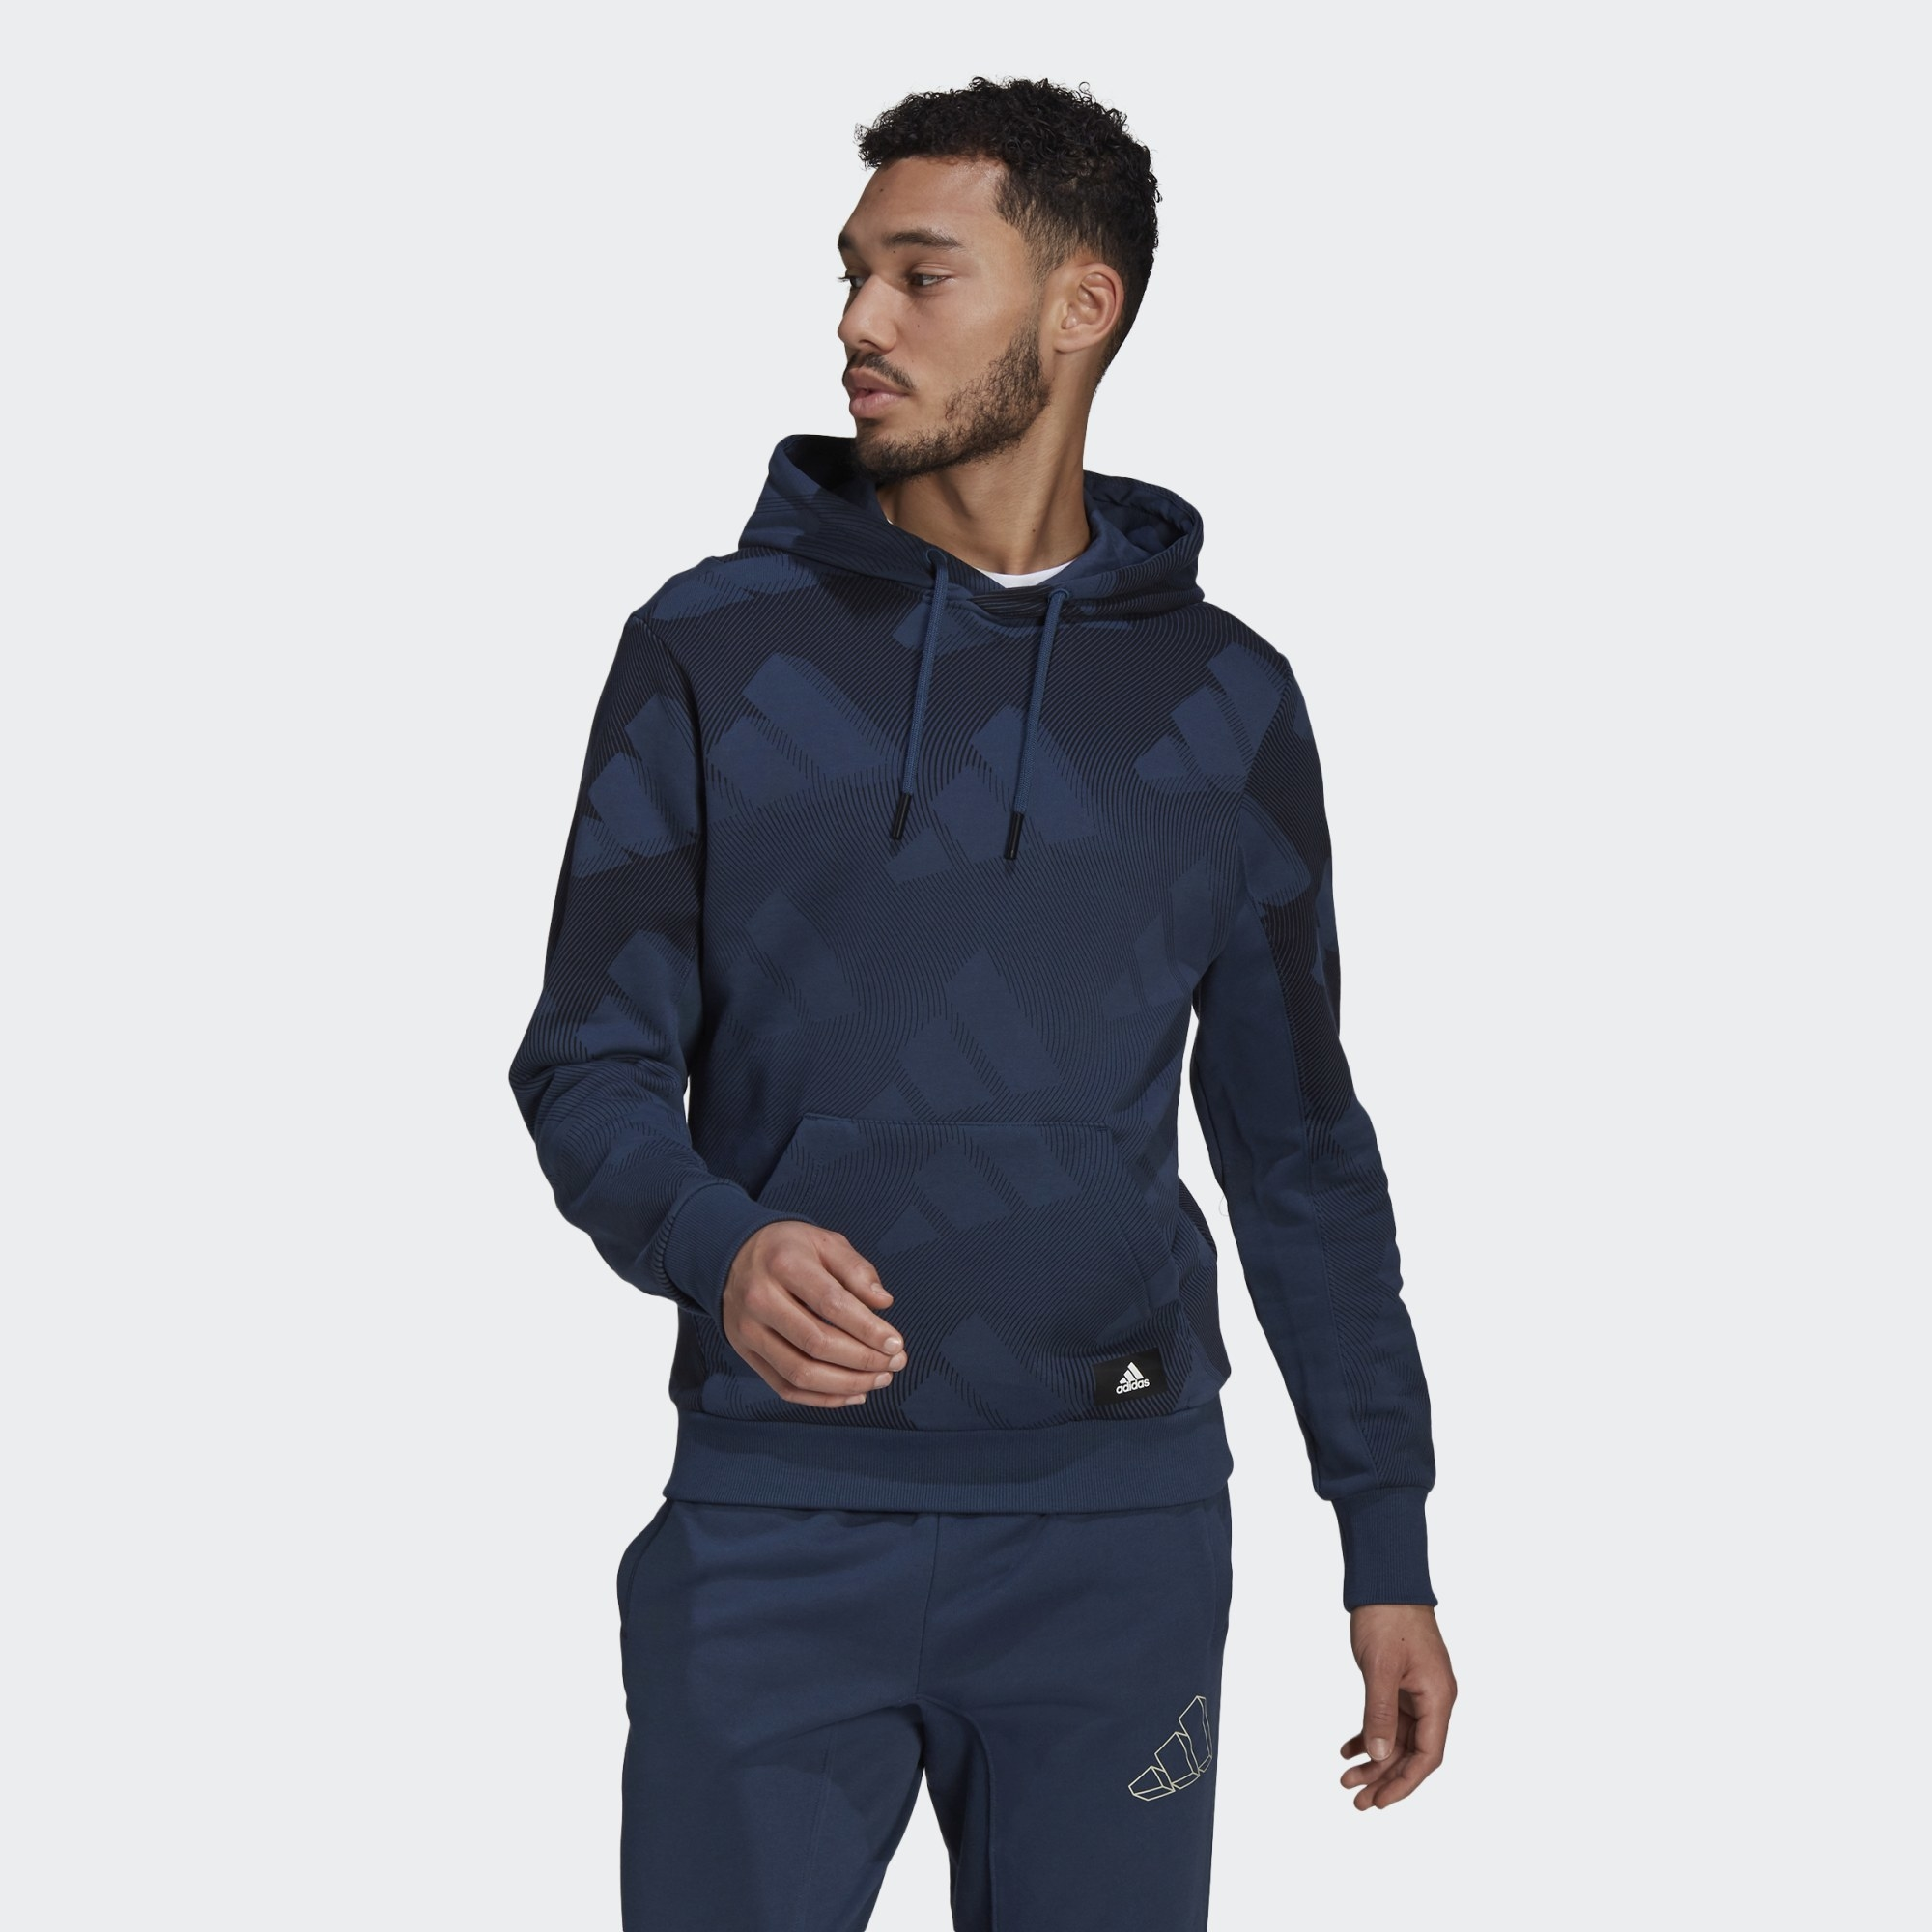 Model wearing dark blue hoodie